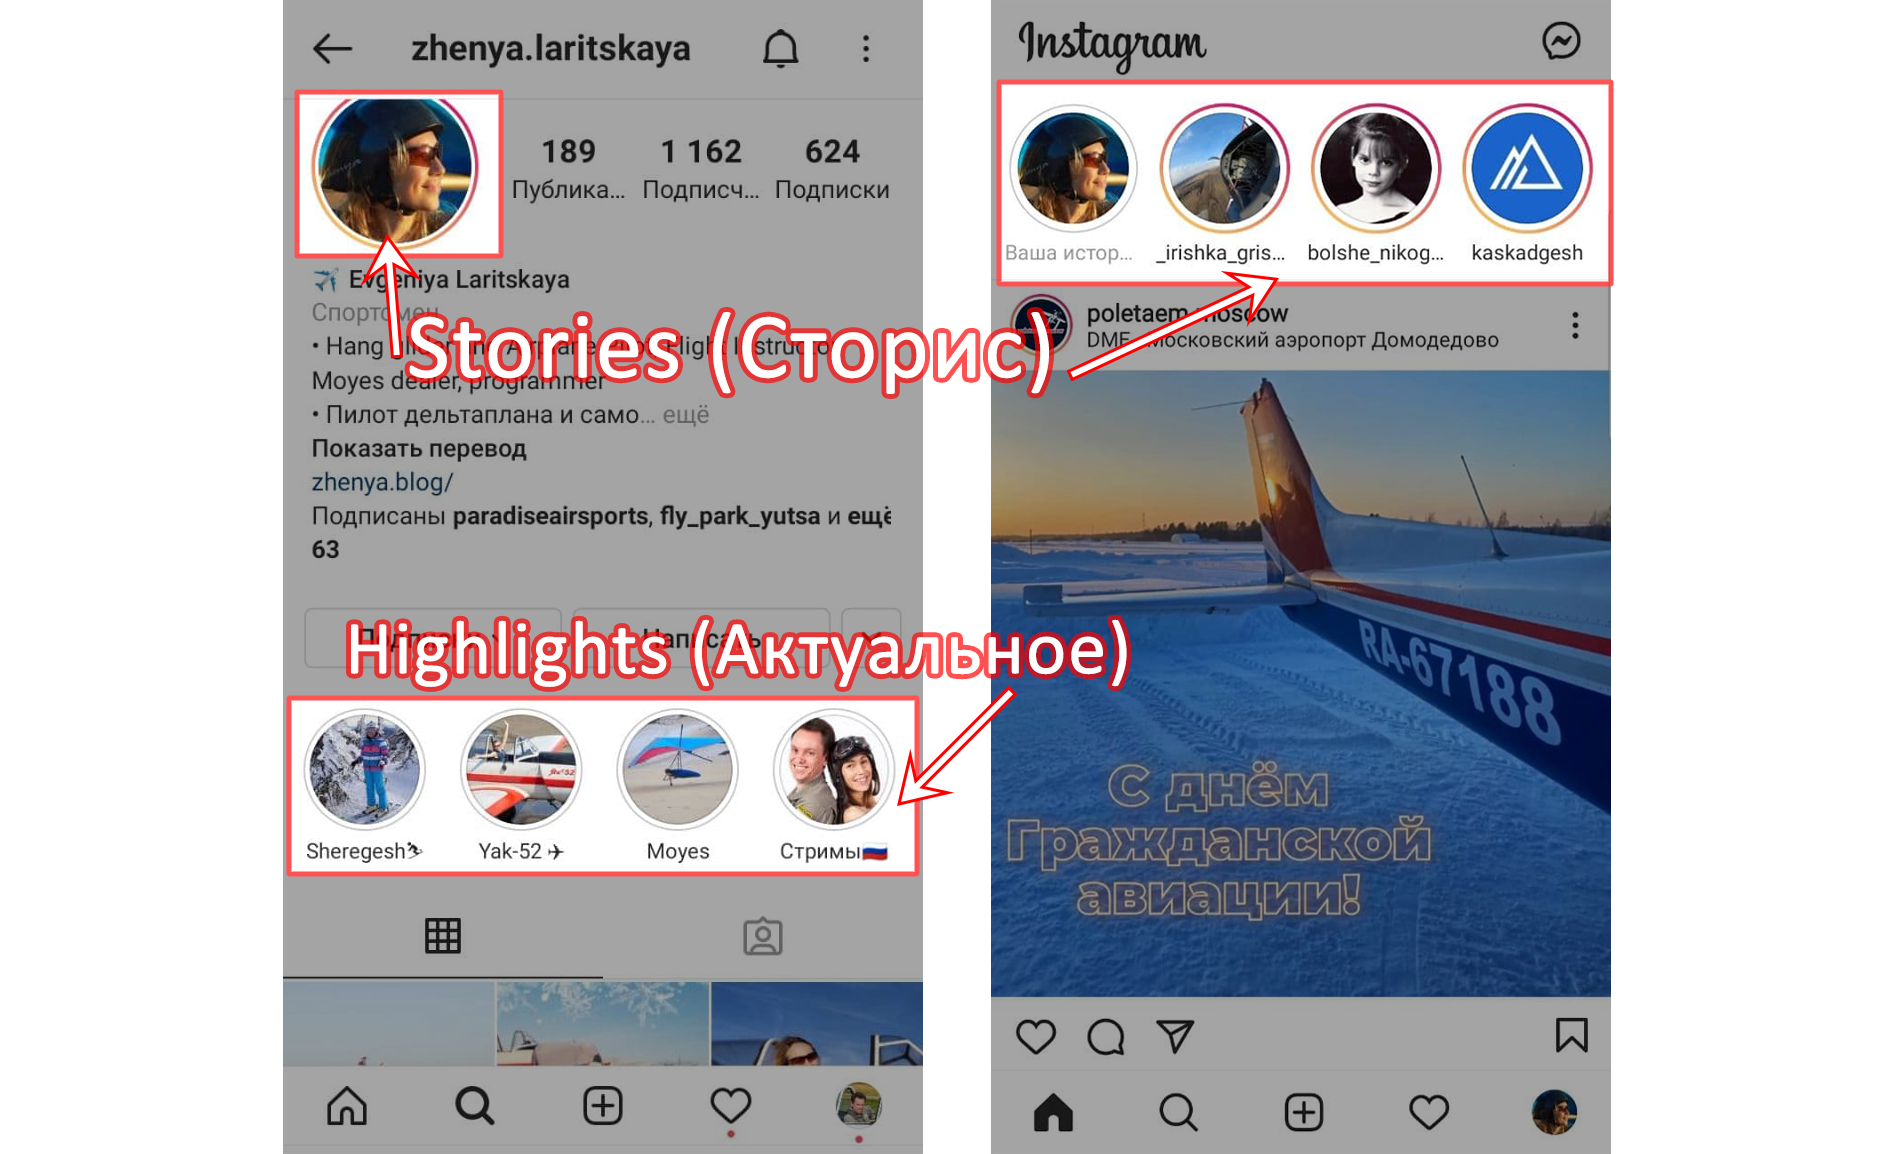 Stories and Highlights in Instagram (profile page on the left and main page on the right) ~ Сторис и Актуальные сторис в Инстаграмме (слева страница профиля и справа главная страница)